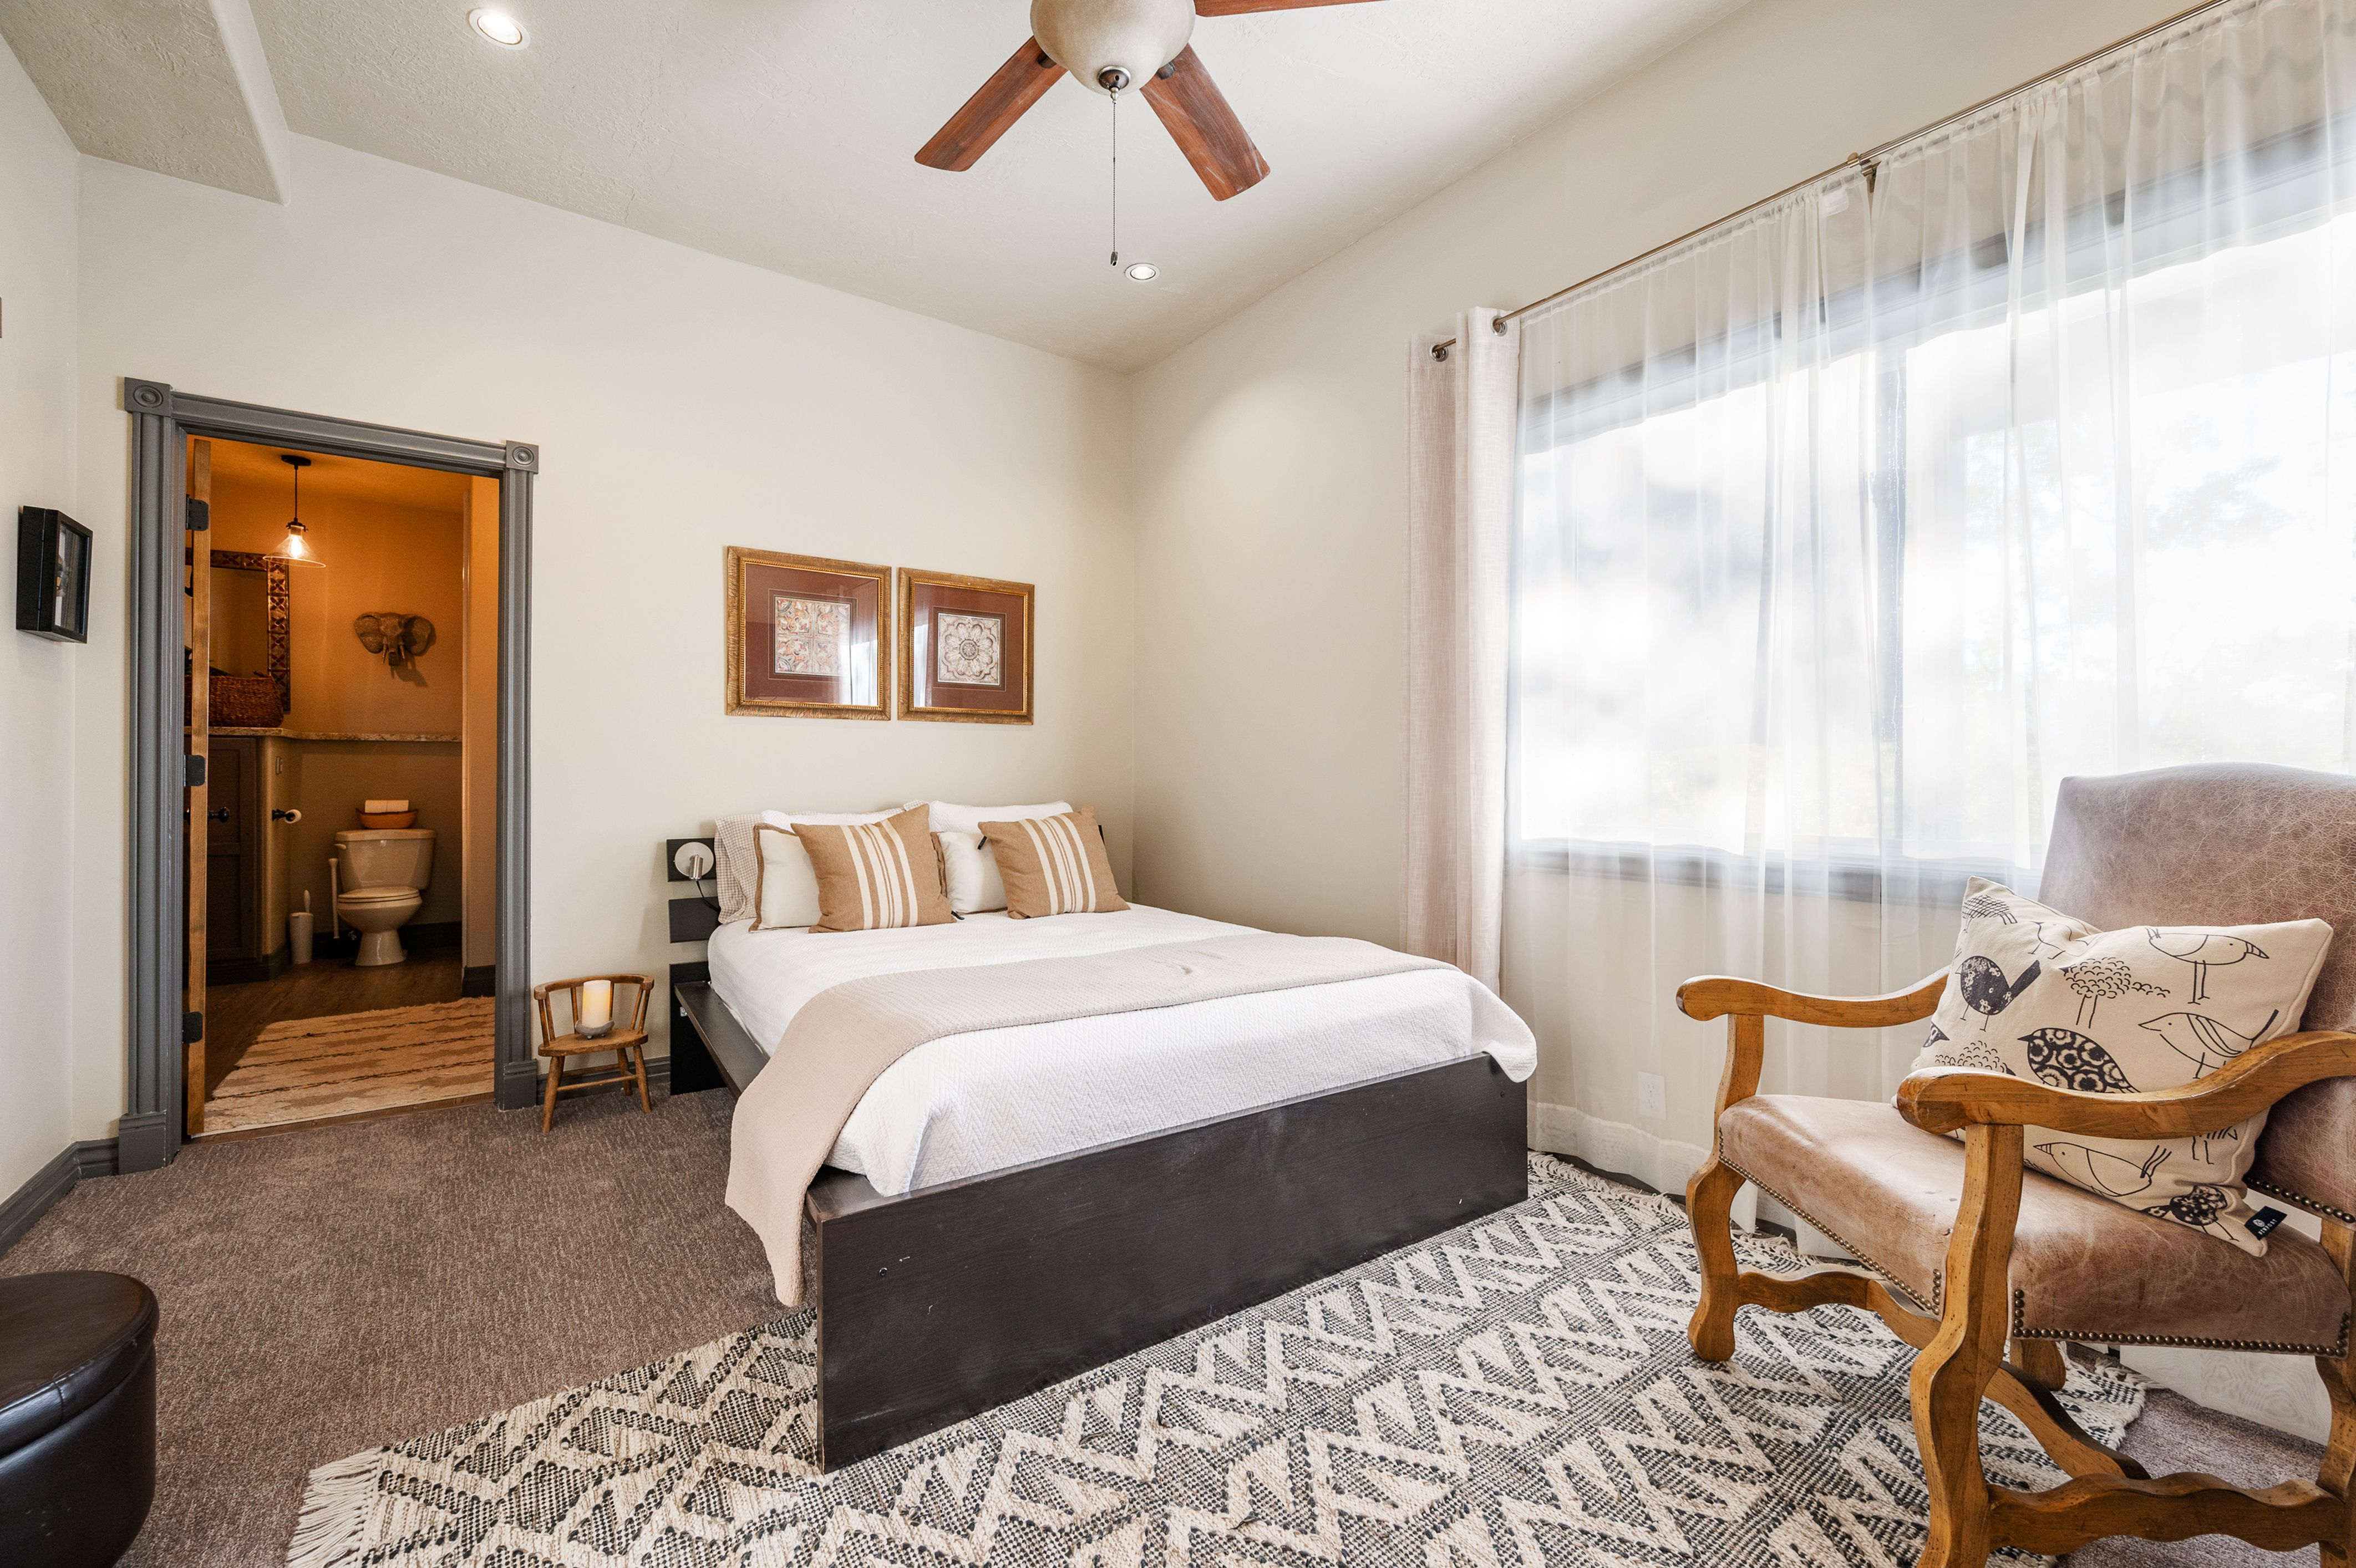 One of 6 spacious bedrooms in this Jeremy Ranch Home. #WindermereUtah #RealEstate #UtahHomes #ParkCityHomes #Bedroom #Neutrals #HomeDesign #HomeStyle #LuxuryLiving #DreamHome #Luxury #Airy #Bright #Home #Interior